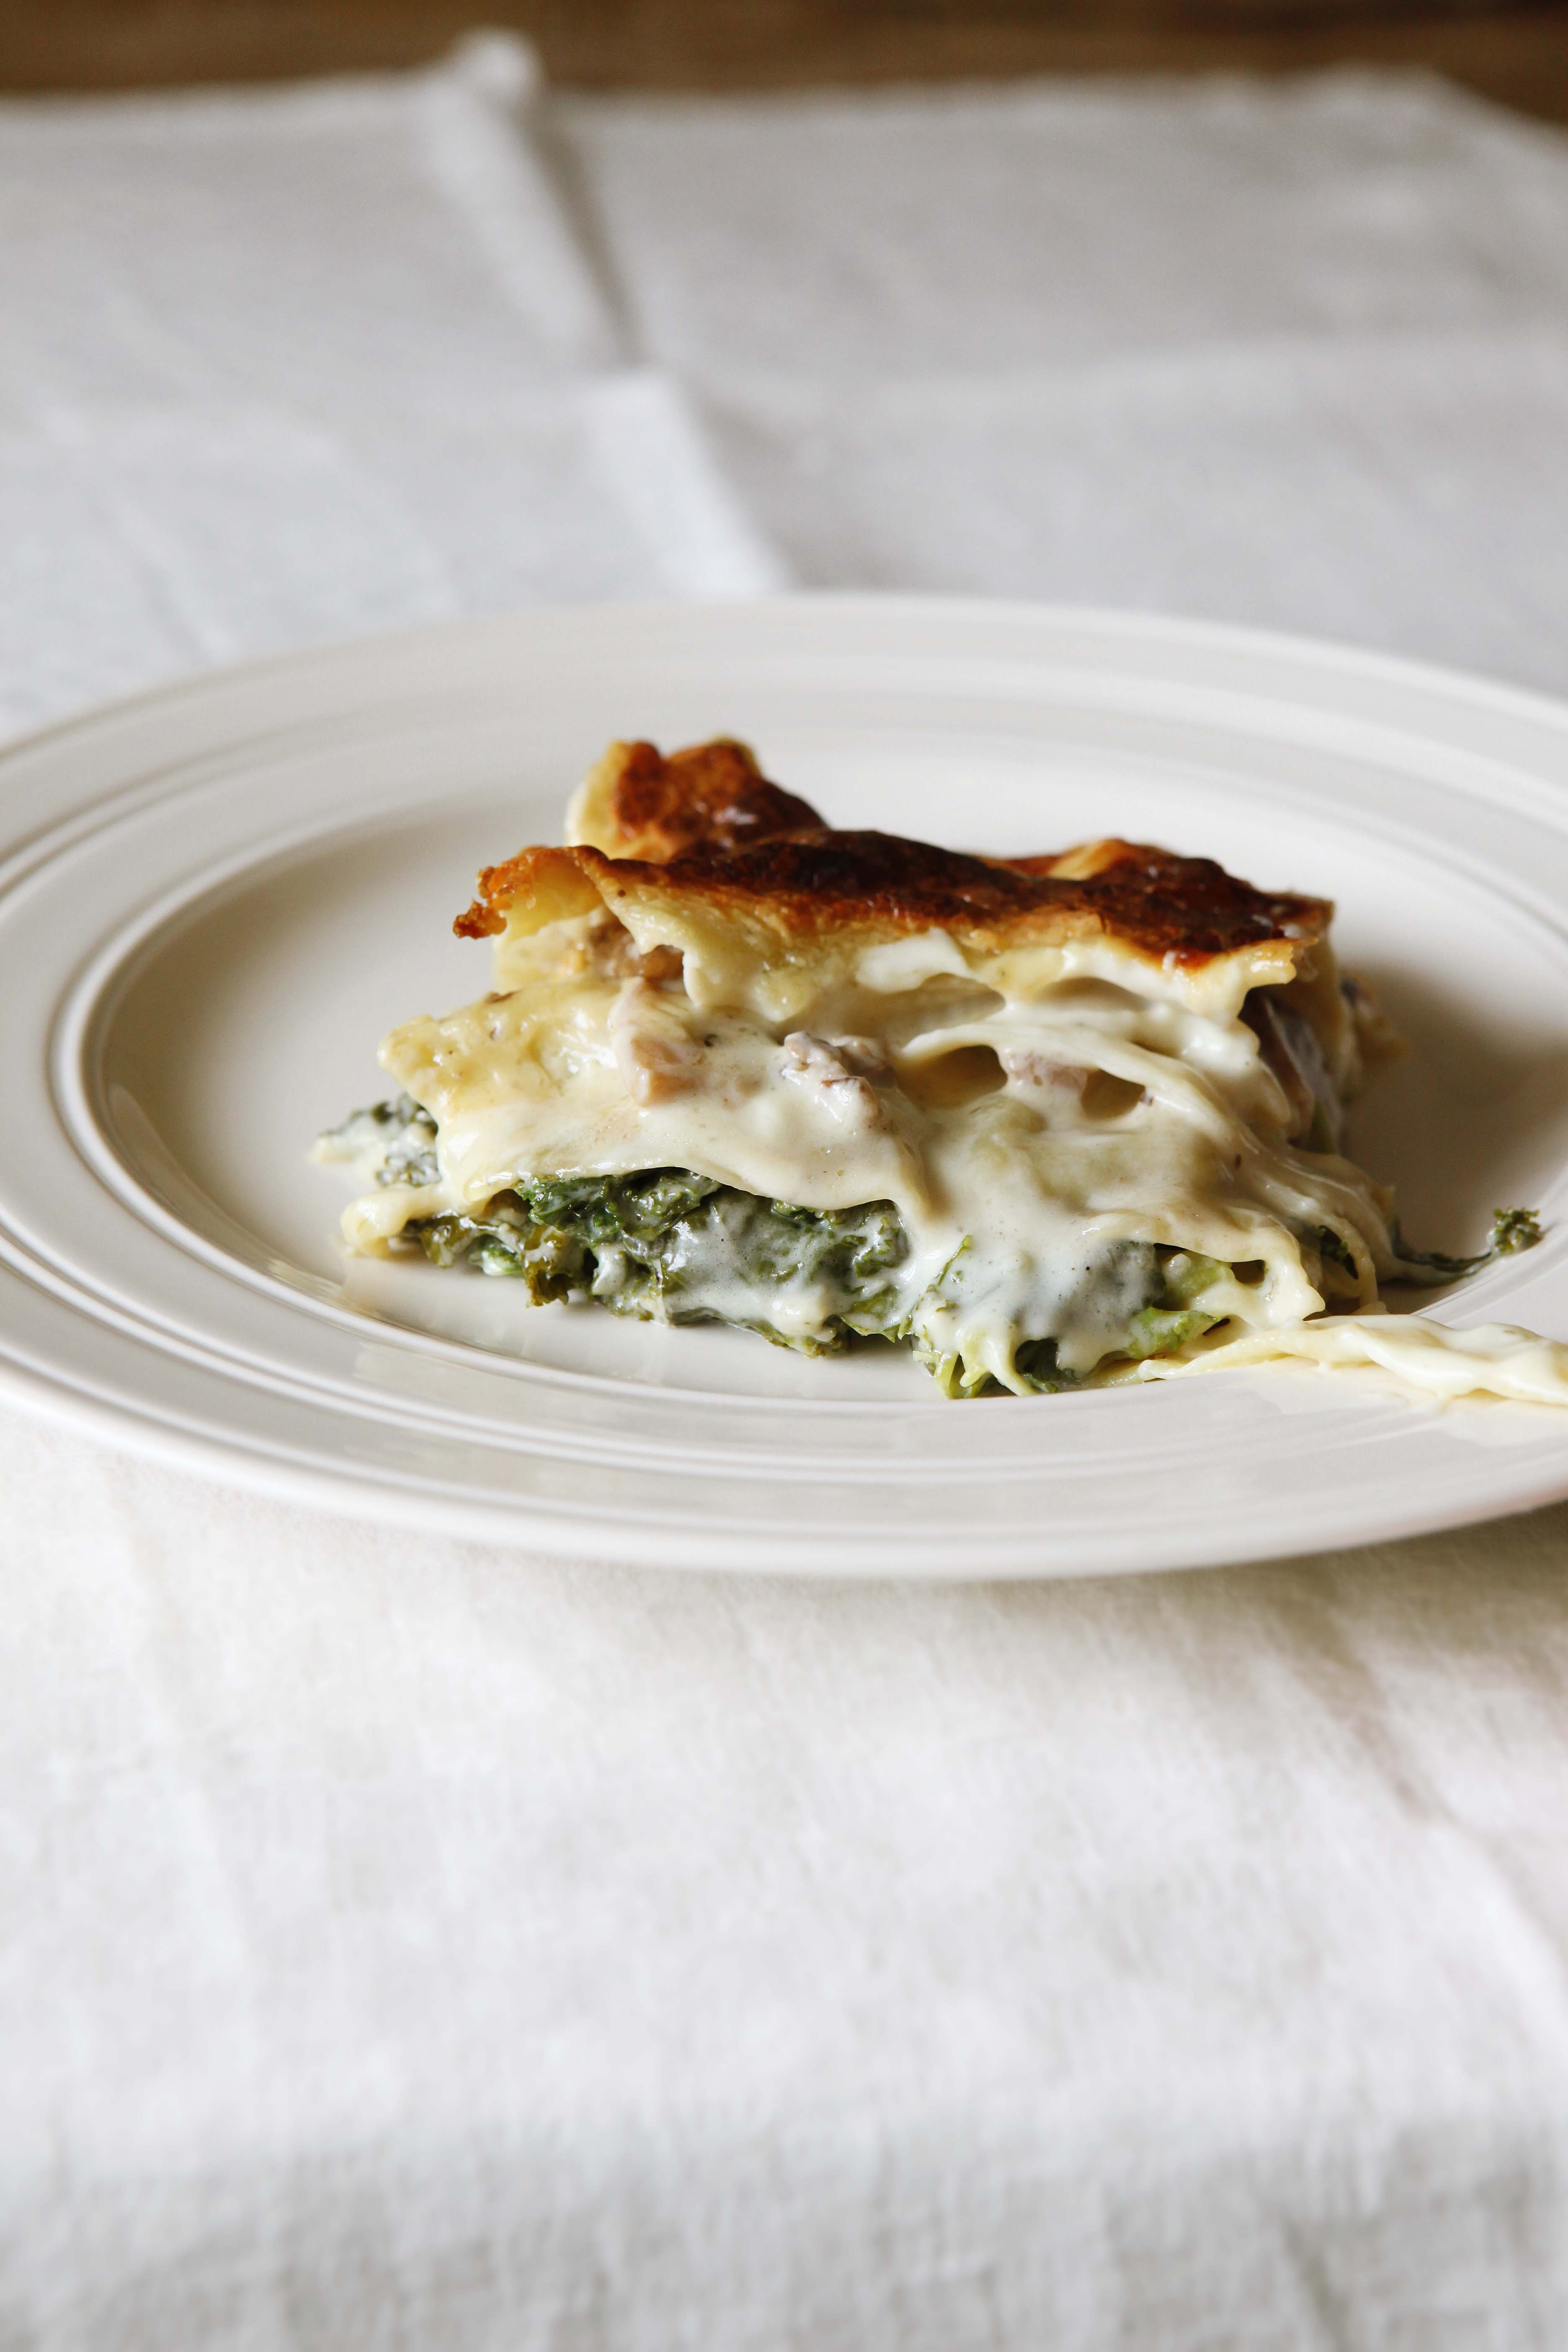 River Cottage's Kale and mushroom lasange